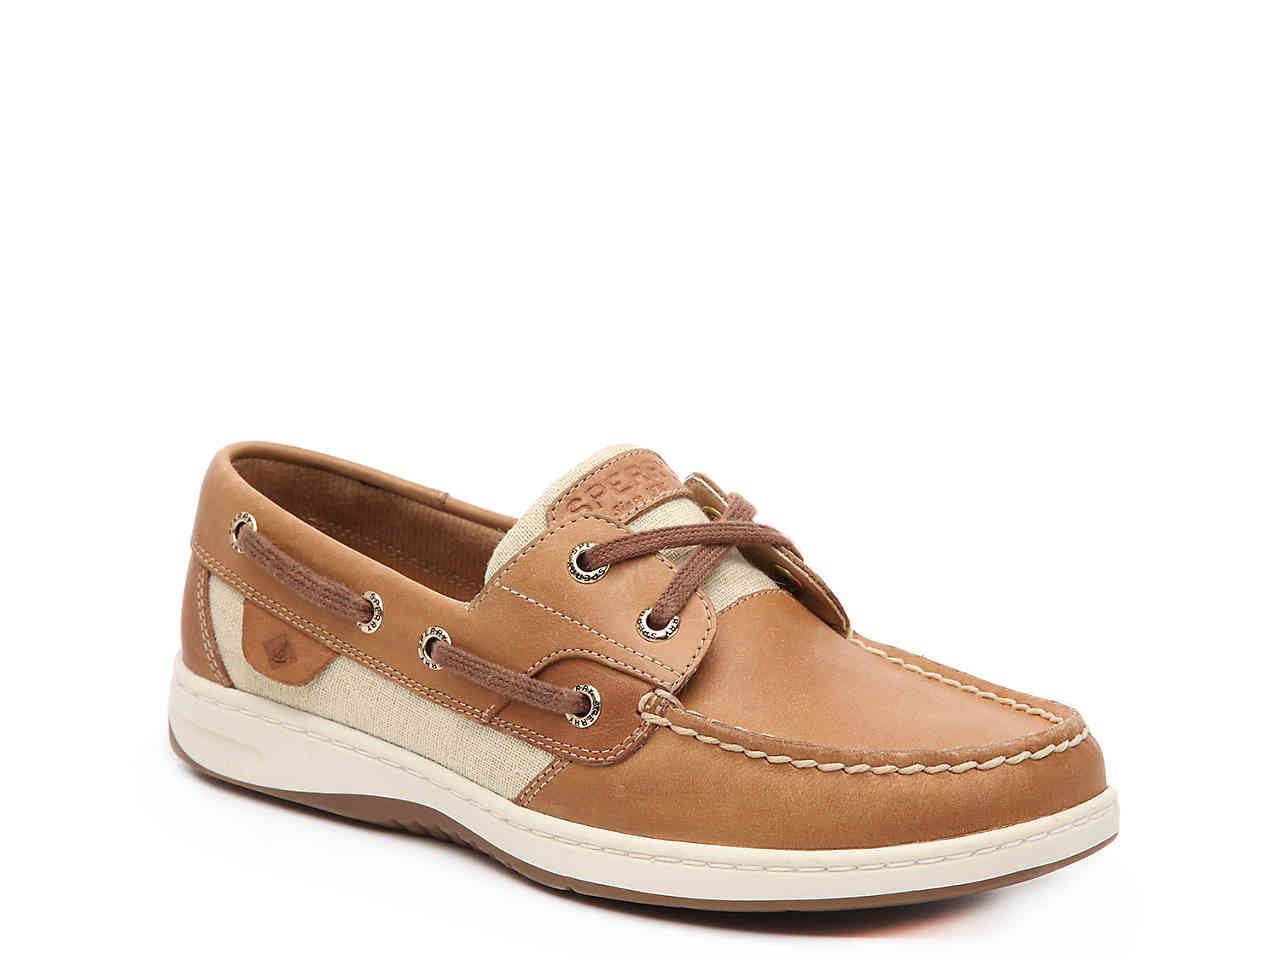 Sperry Bluefish Boat Shoe in 2020